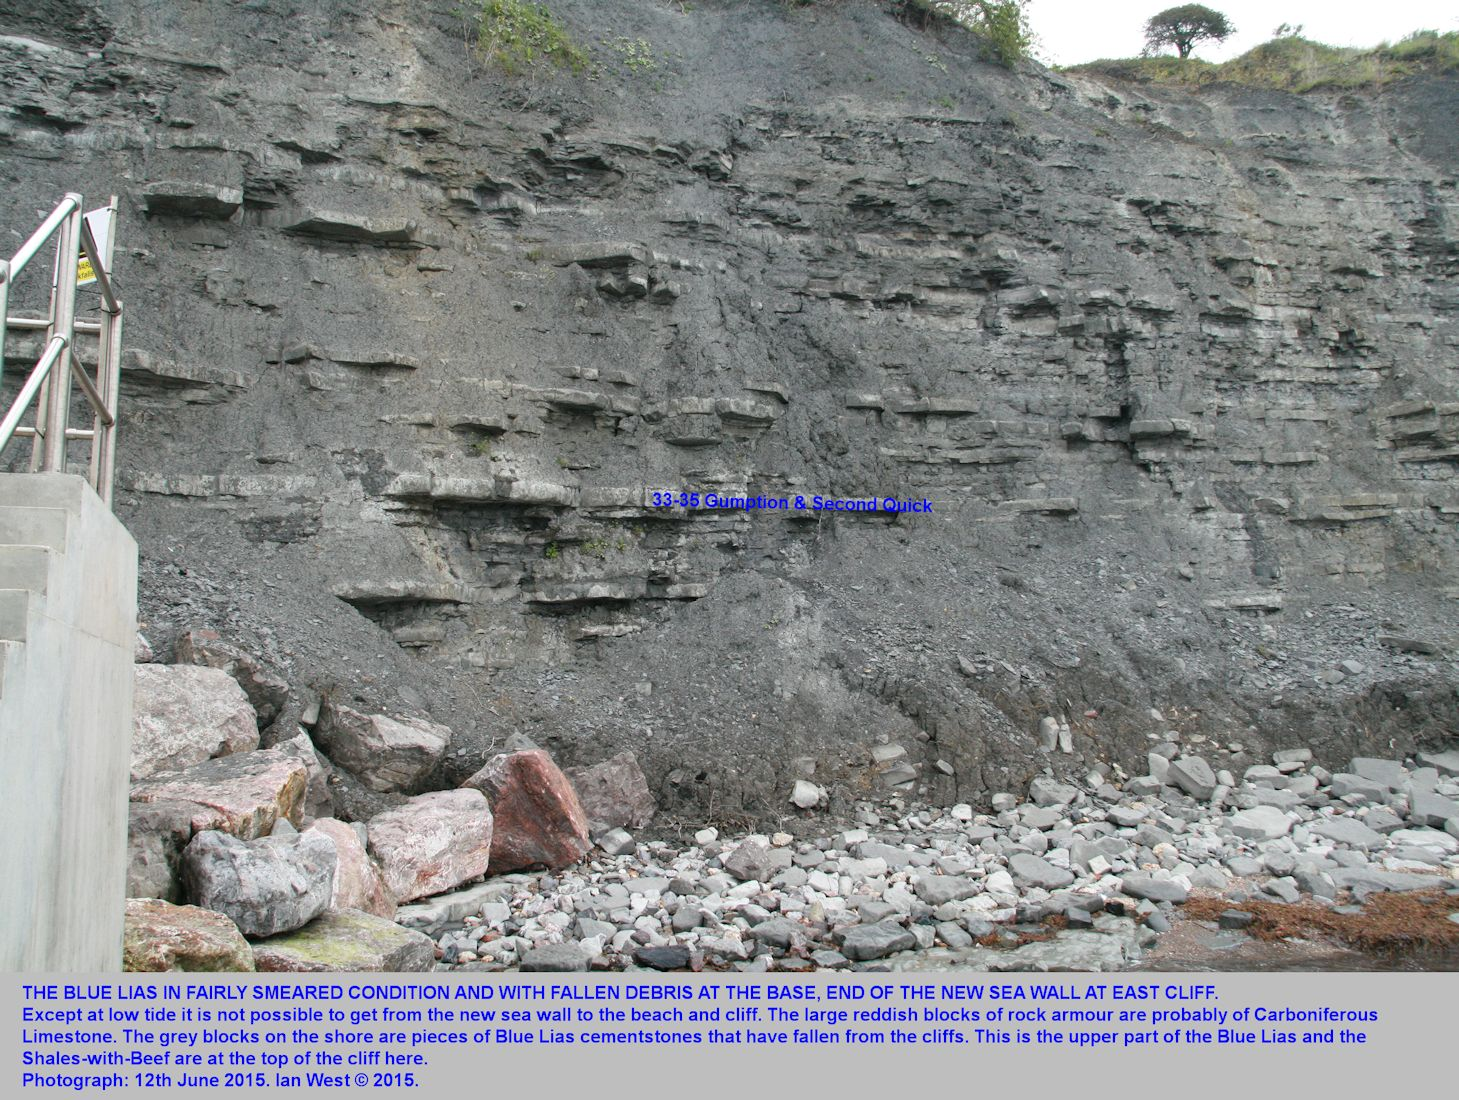 East Cliff of Blue Lias, at the end of the new, north-eastern sea wall, Lyme Regis, Dorset, with the Gumption and Second Quick named as marker horizons, June 2015